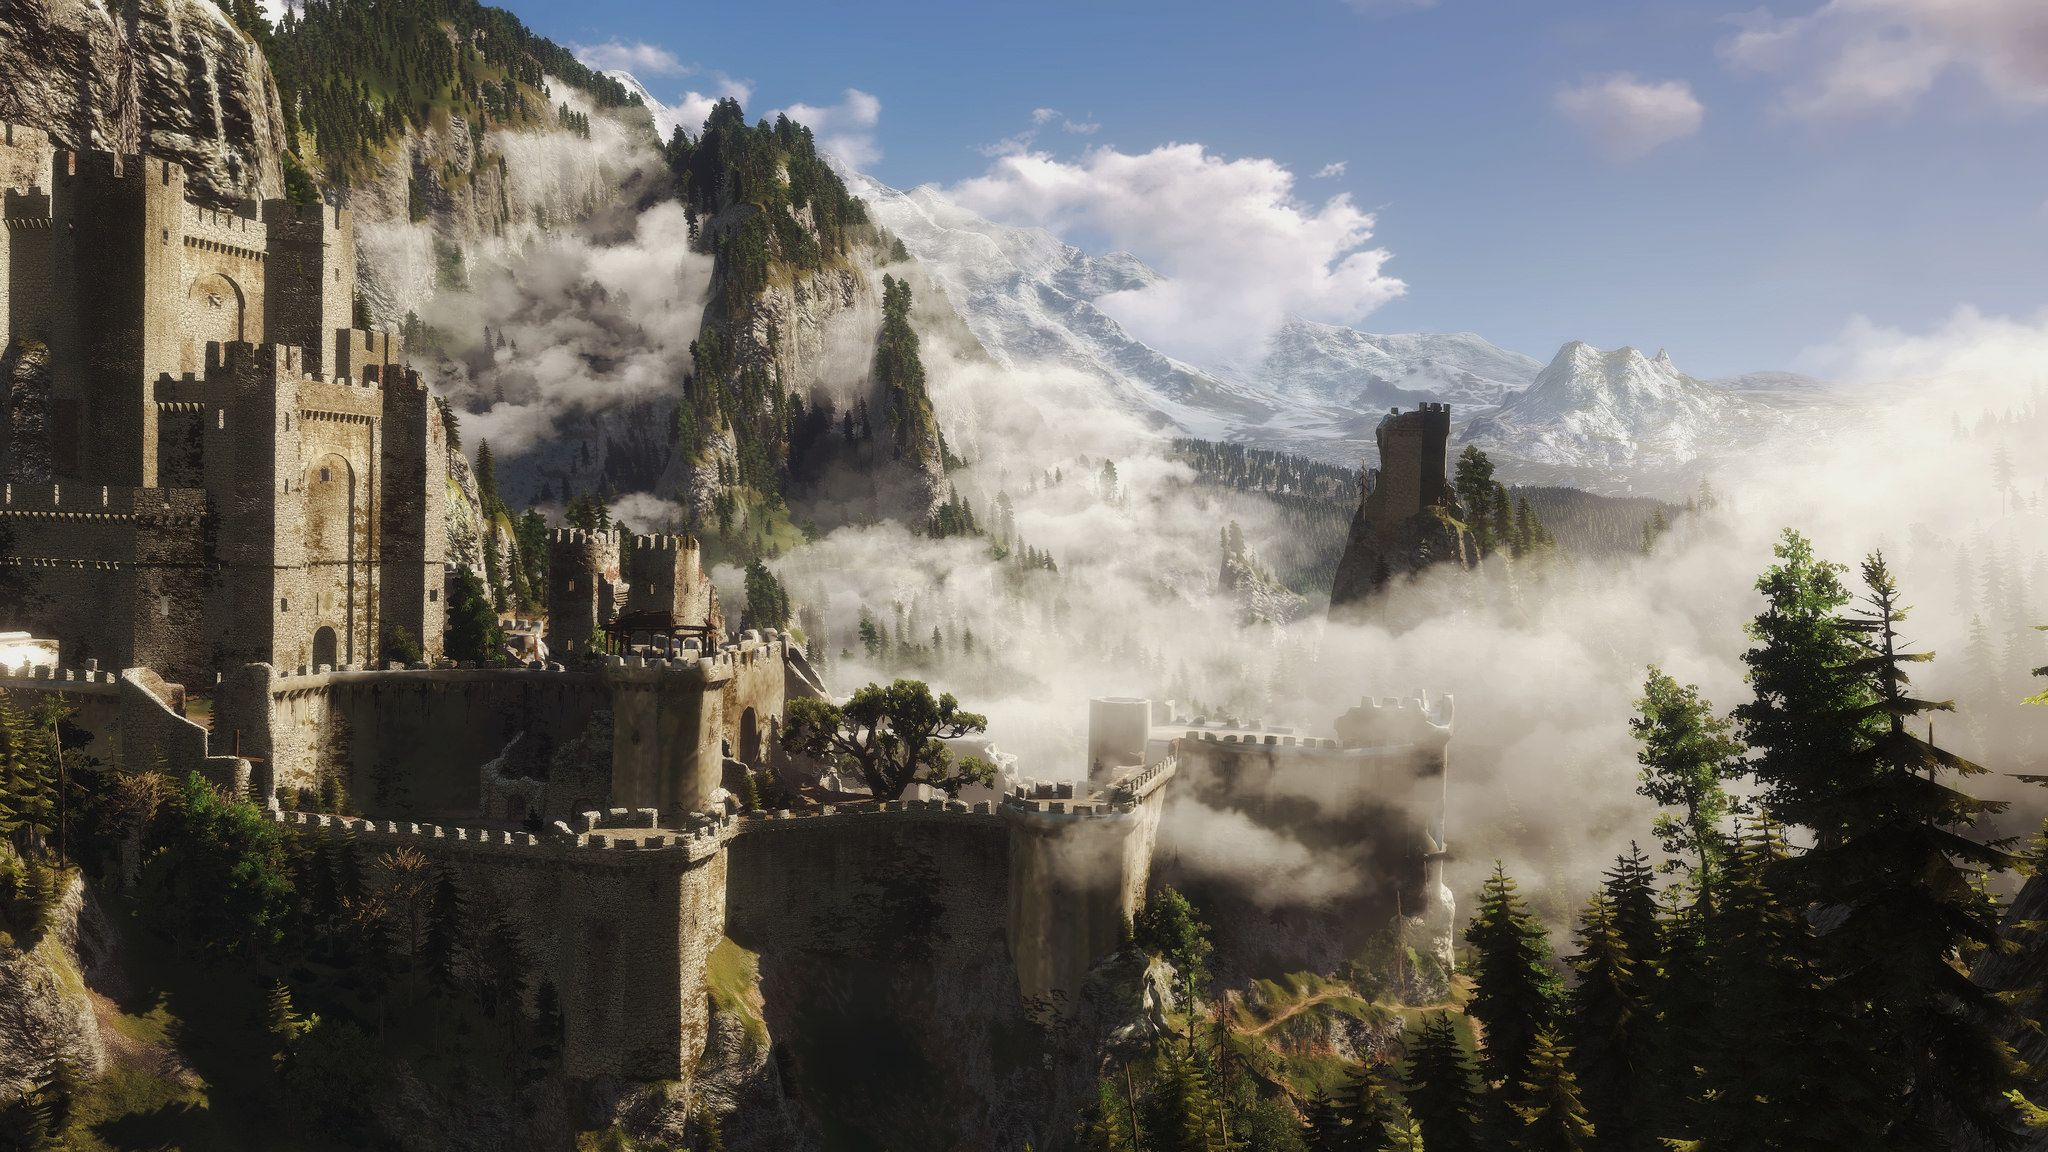 Kaer Morhen in 2020 | The witcher 3, The witcher, Fantasy places